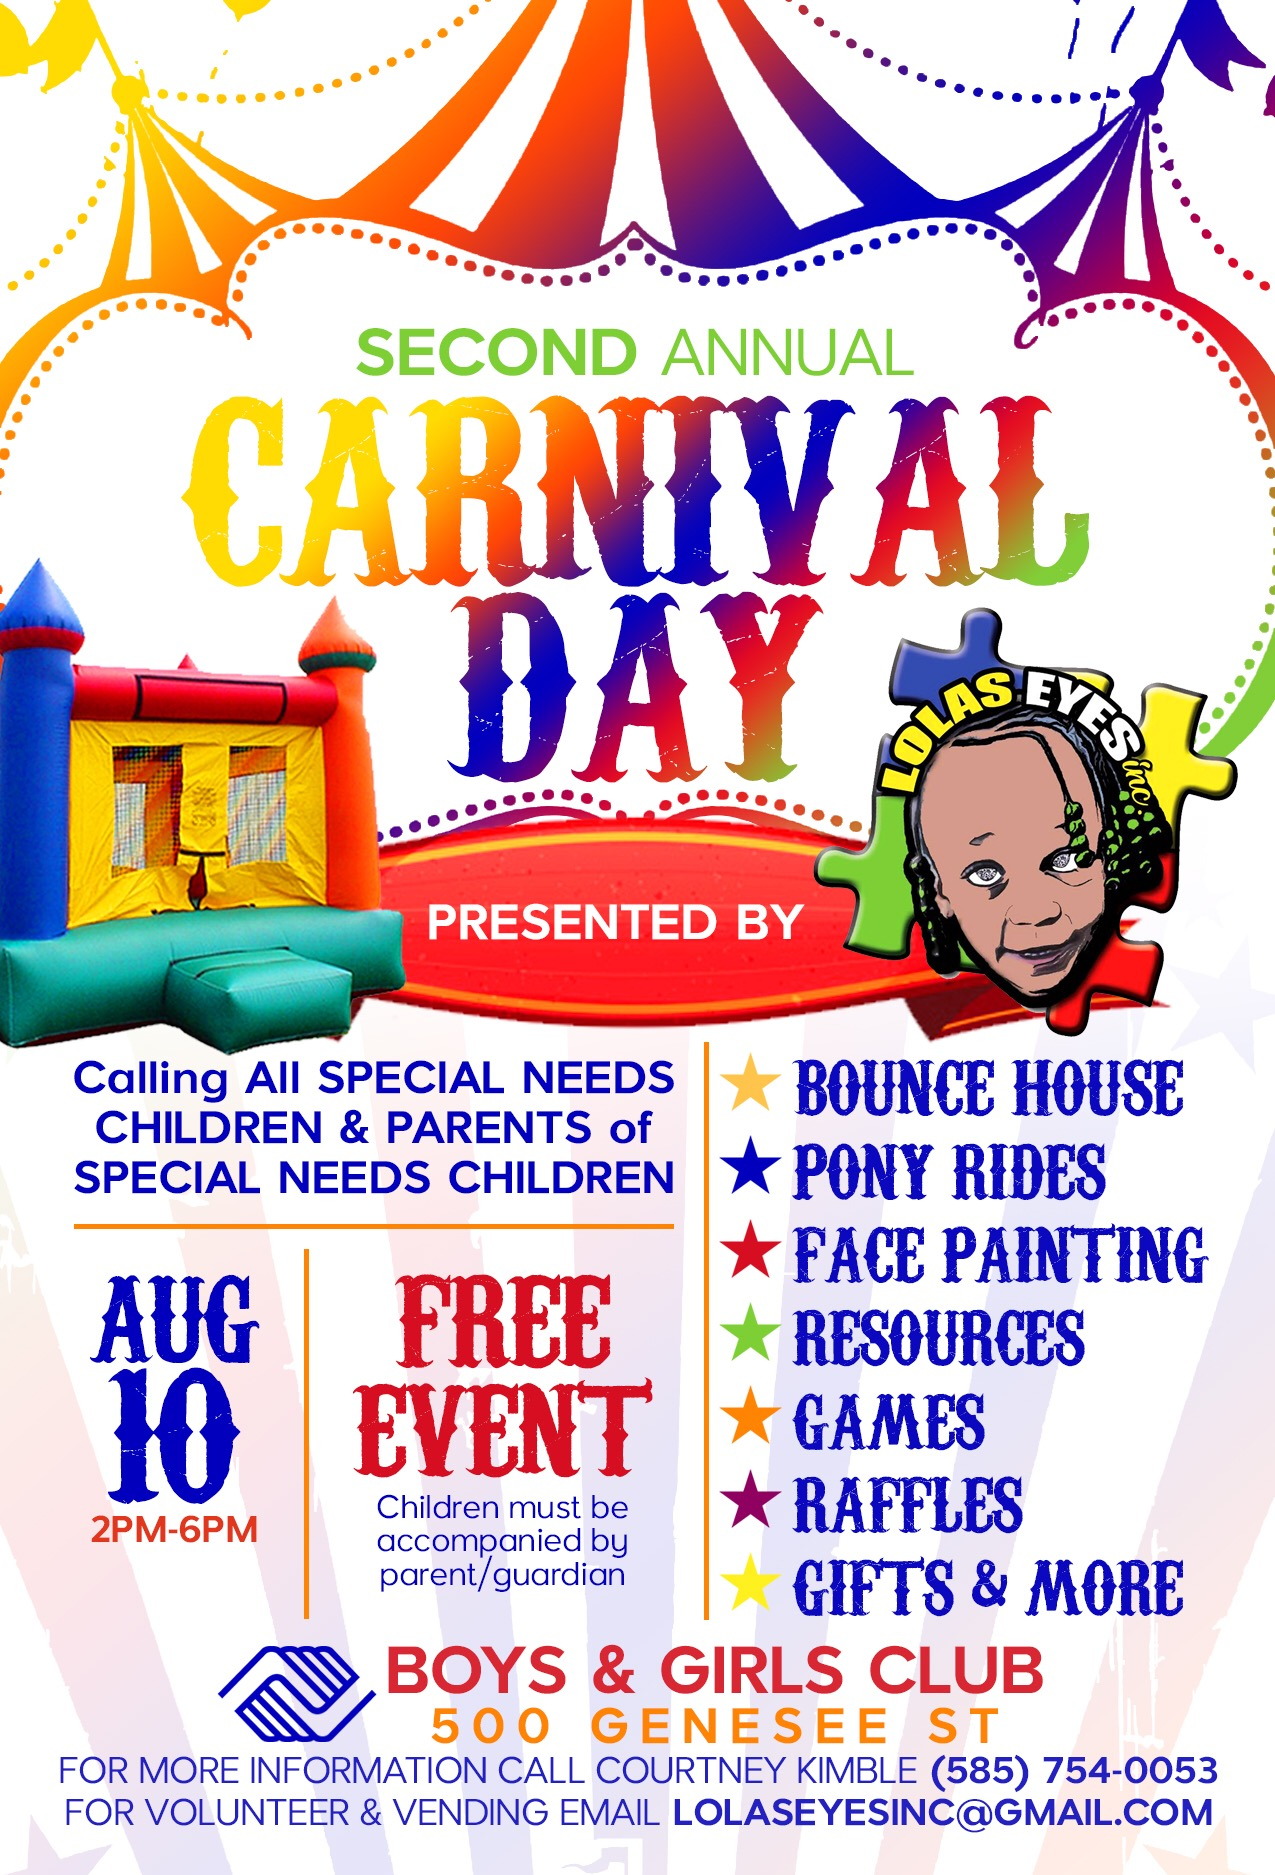 As More Parents Of Special Needs >> Free Fun Event For Children With Special Needs And Parents Wdkx